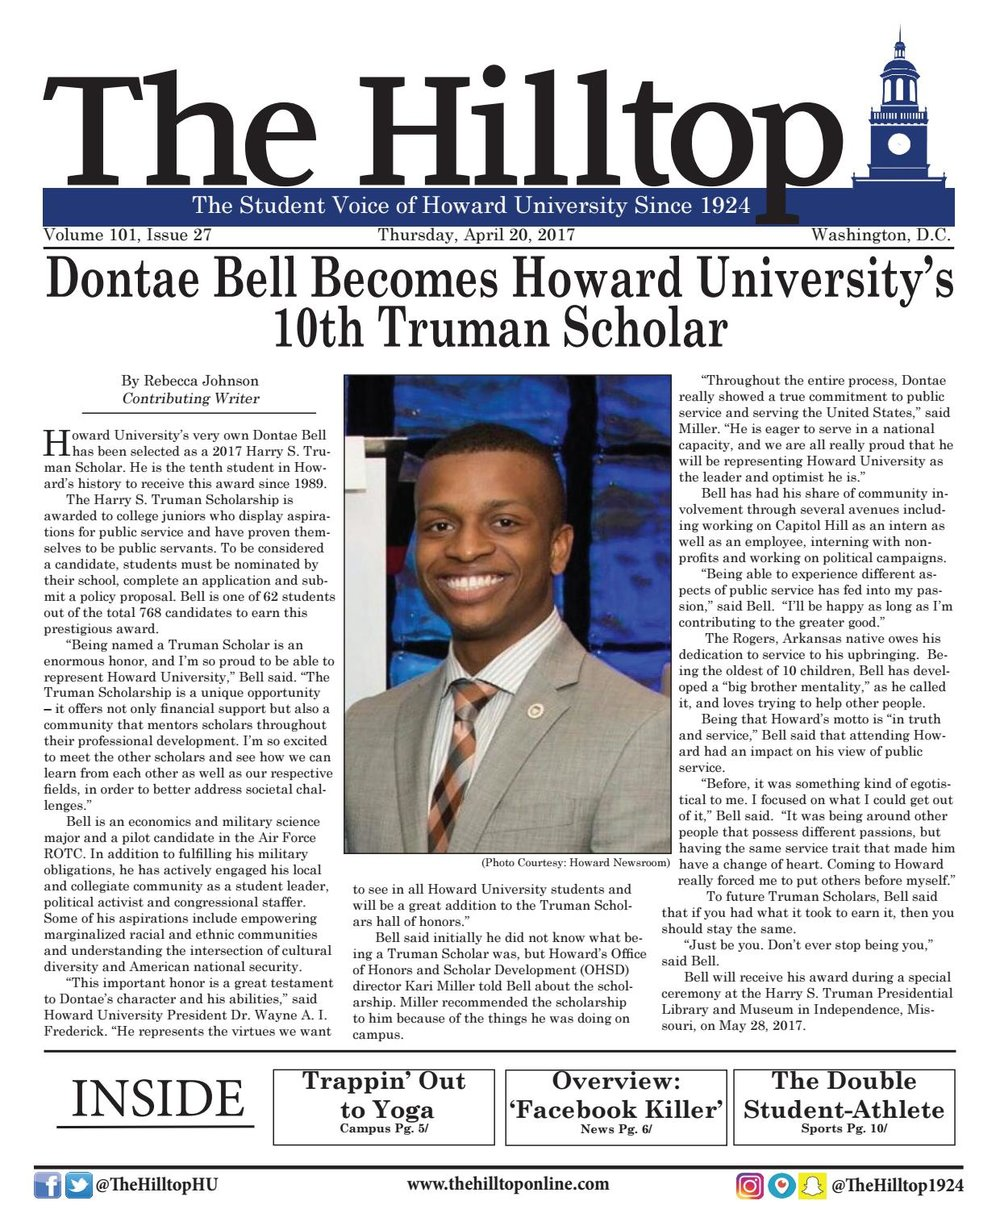 Dontae Bell Becomes Howard University's 10th Truman Scholar